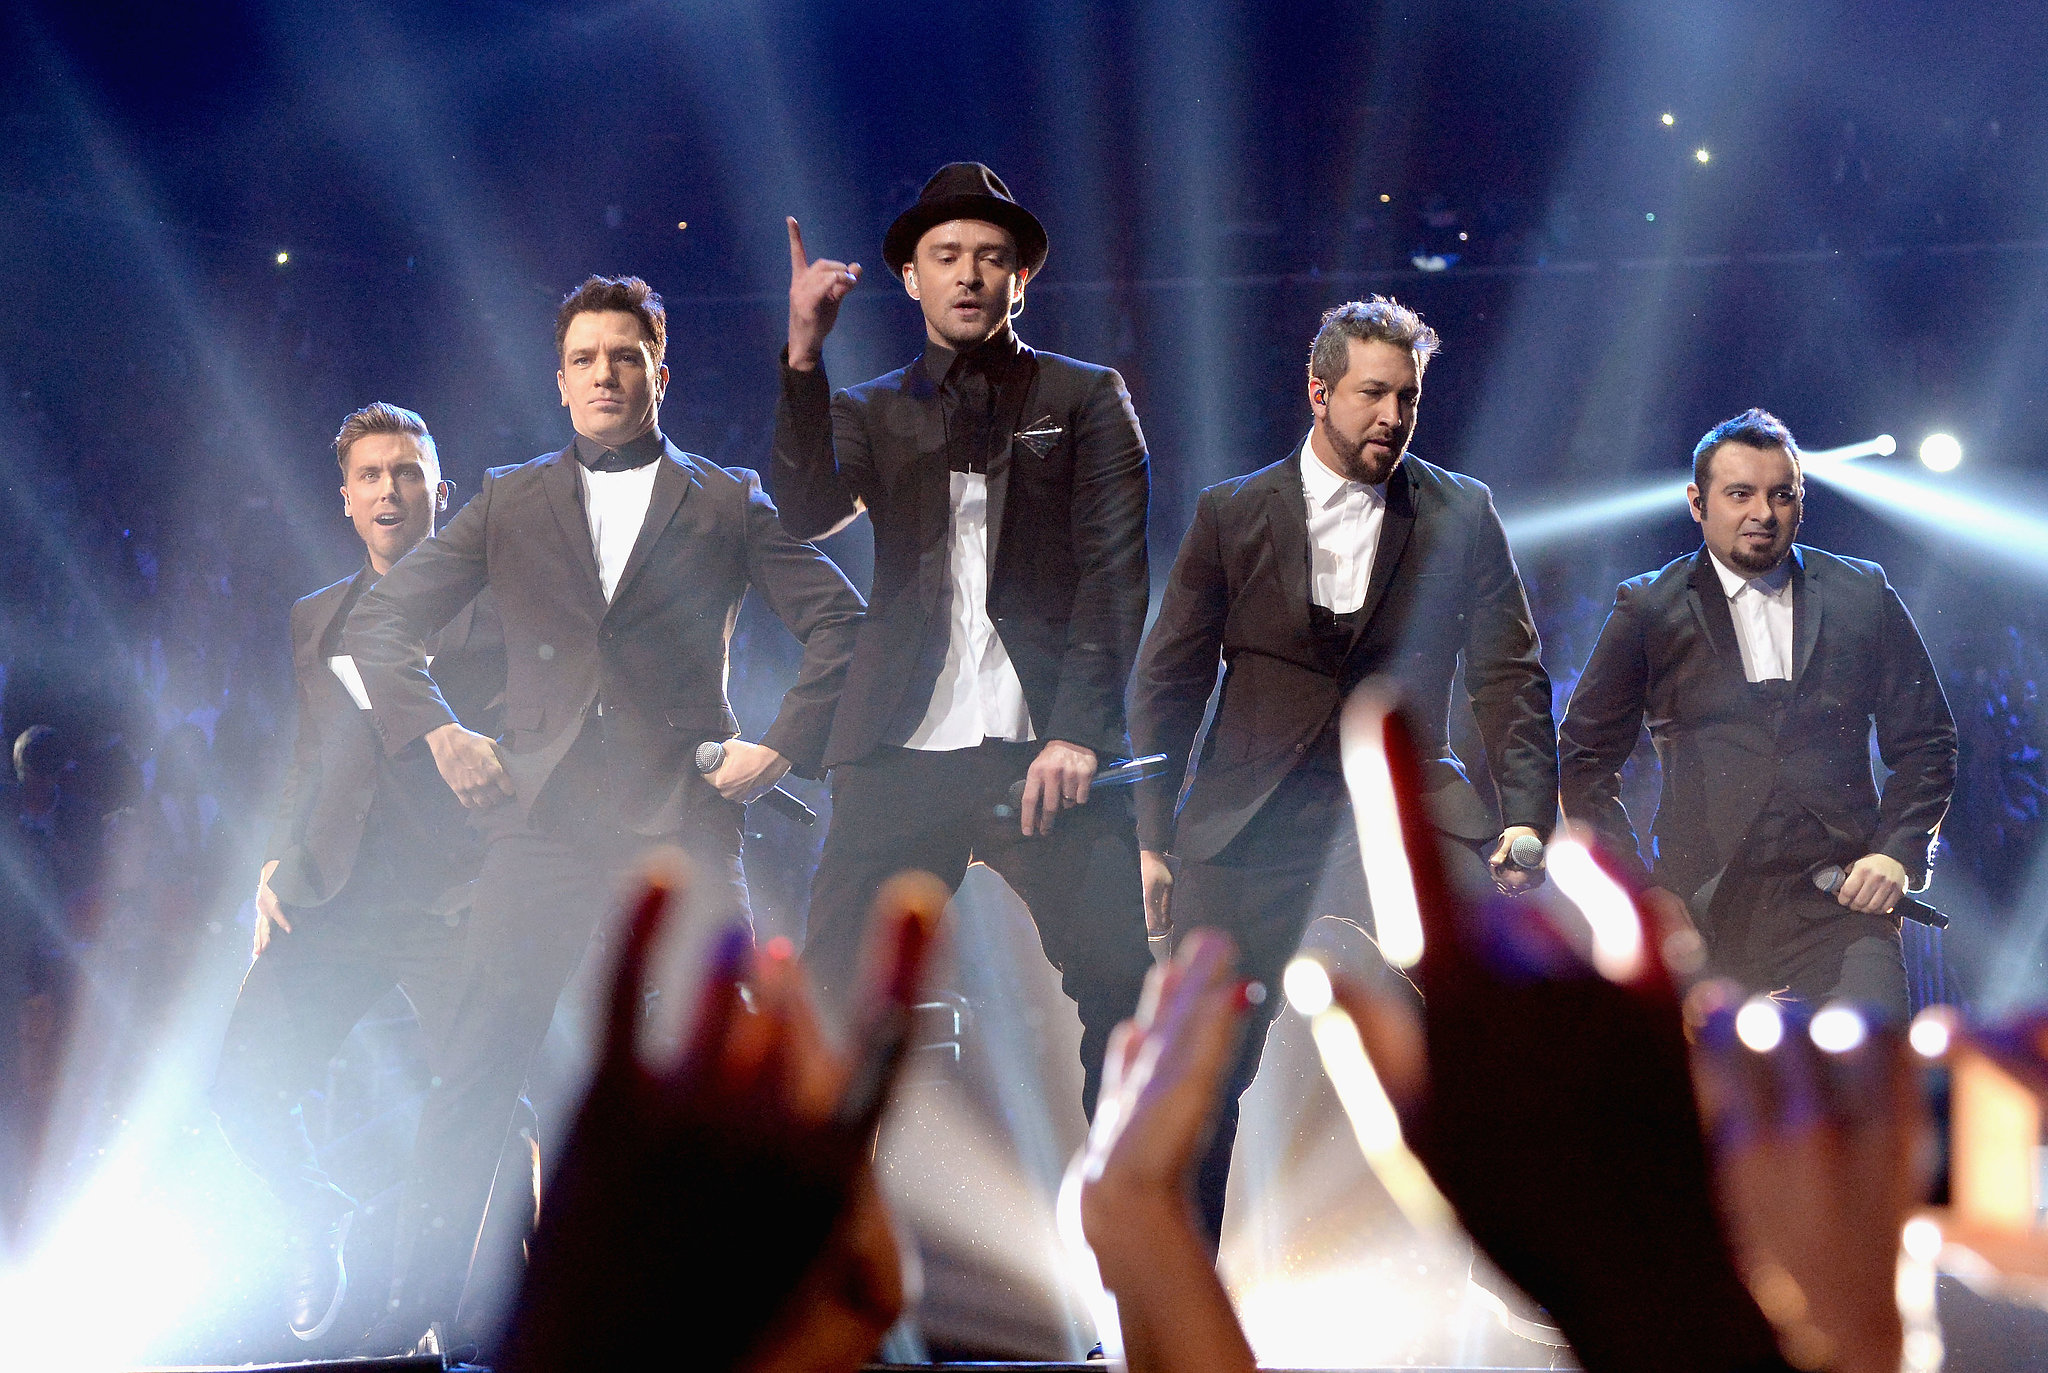 Justin Timberlake performed for a whopping 20 minutes at the MTV VMAs, where he was also joined on stage by his former *NSYNC bandmates.